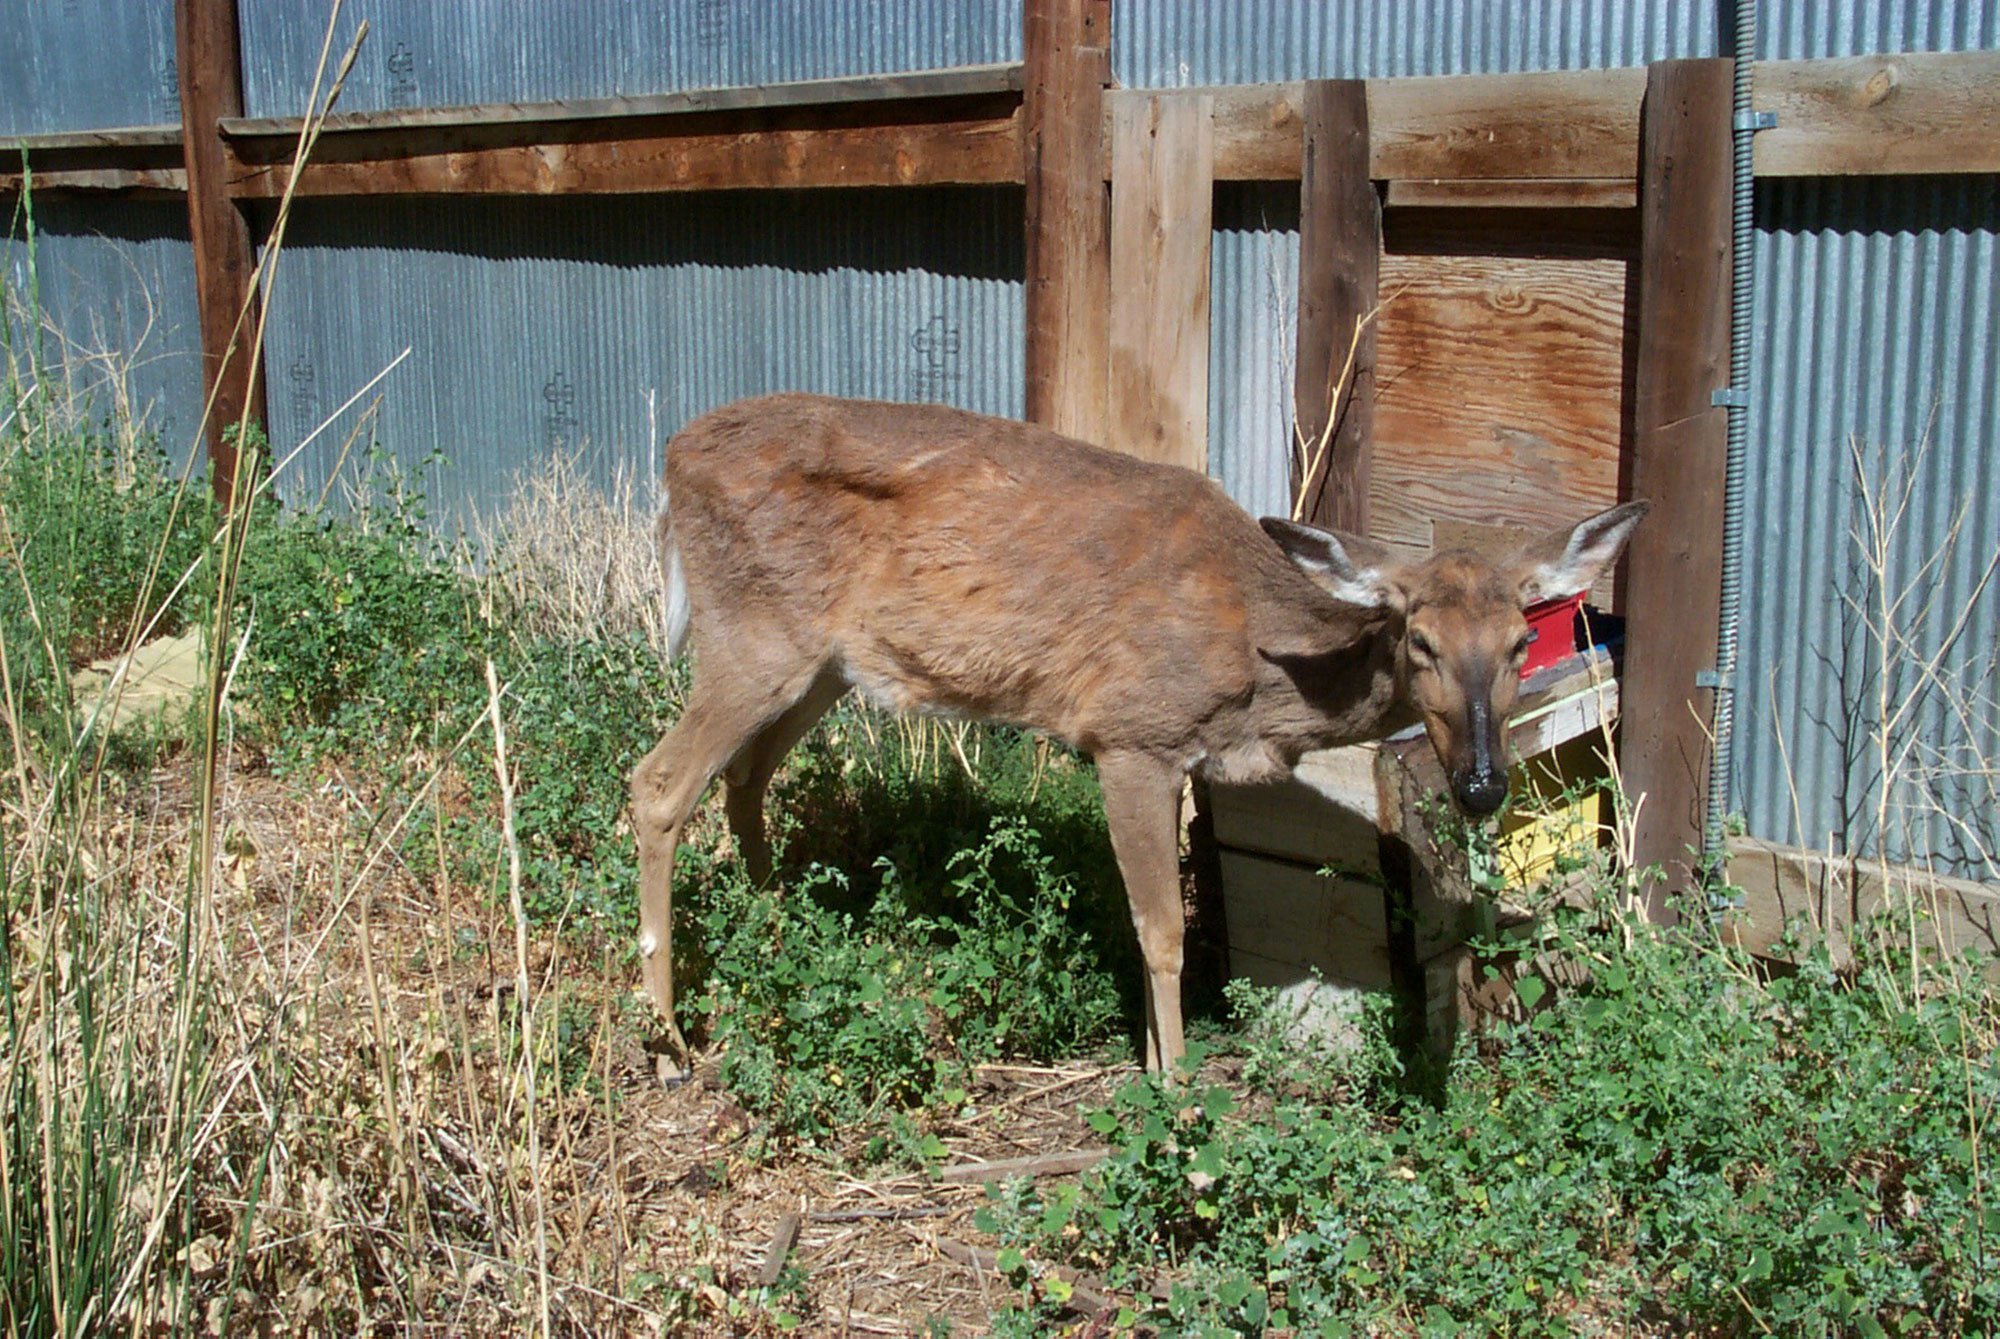 Another deer suffering from Chronic Wasting Disease